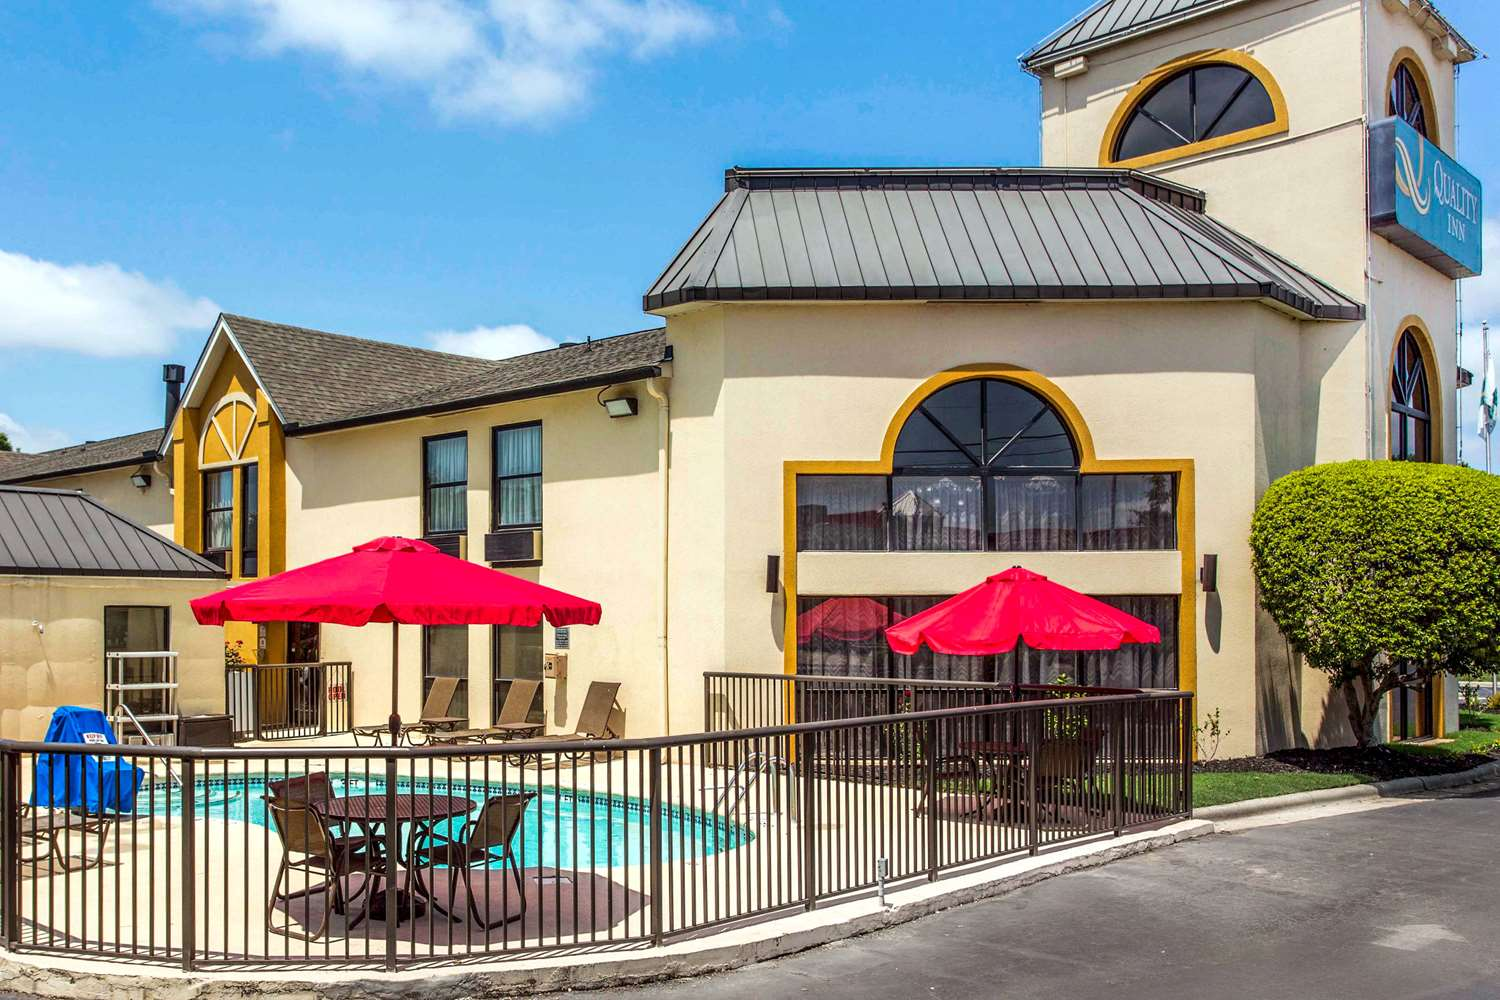 Cool Hotels Near Carowinds Fort Mill South Carolina With Ben Franklin Parkway Pa